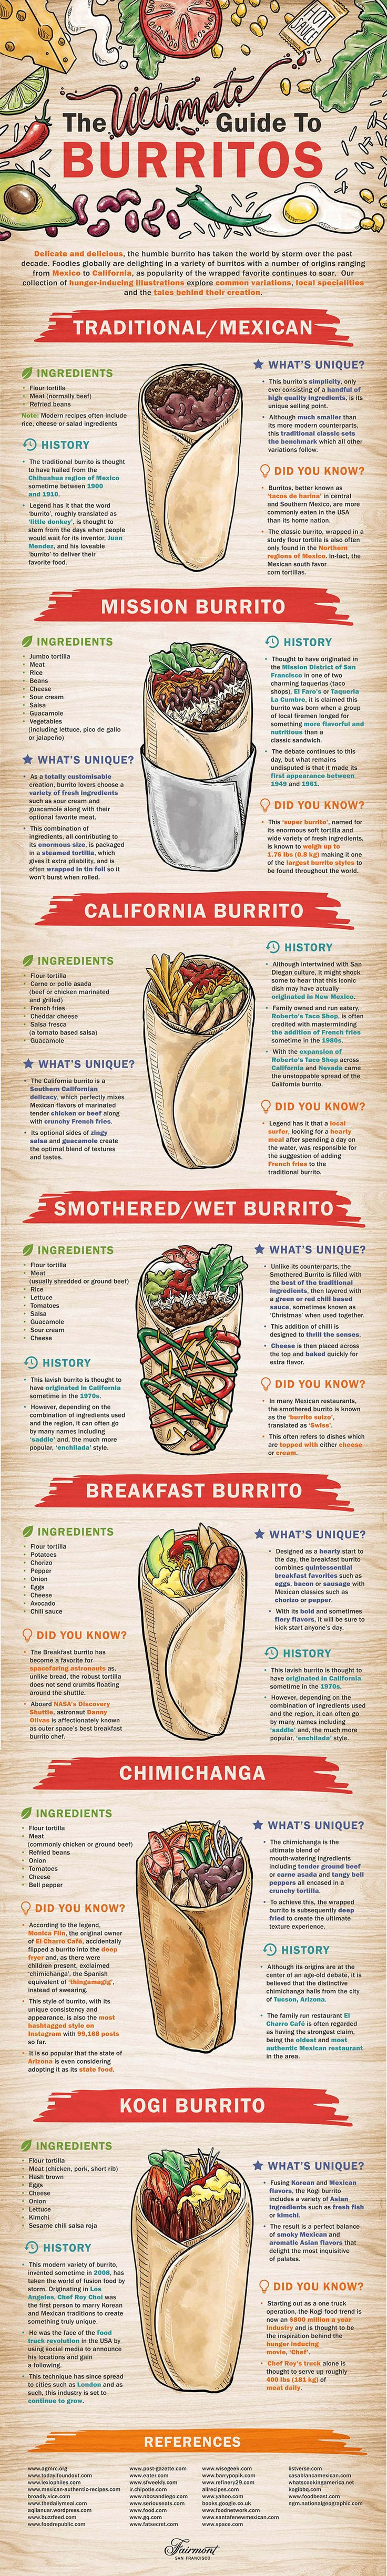 The Ultimate Guide to Burritos - Cooking Infographic. Topic: food, recipe, Mexican